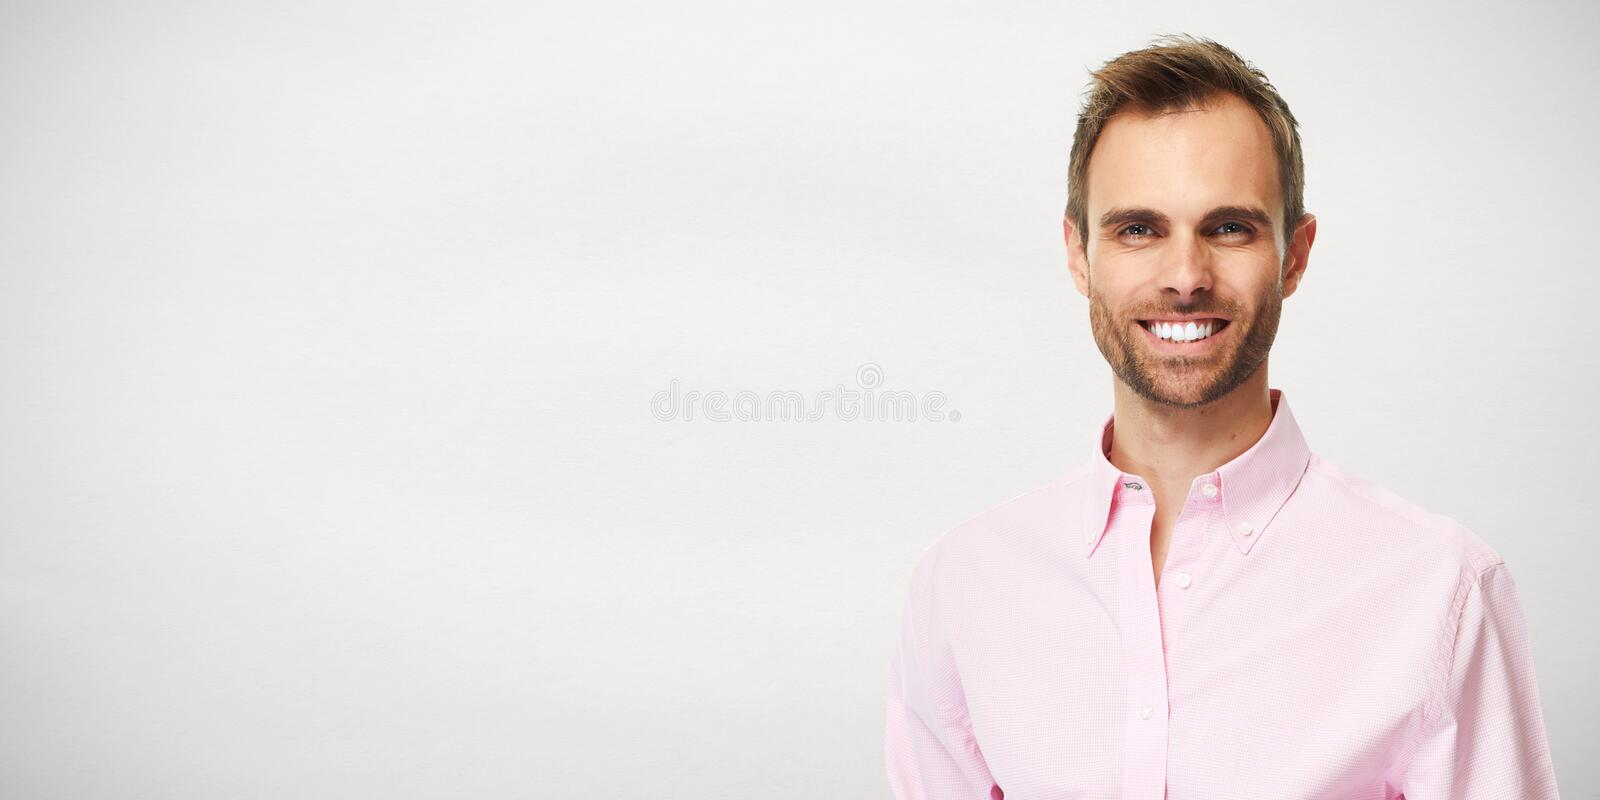 Man portrait. Young handsome casual man portrait over gray background royalty free stock images